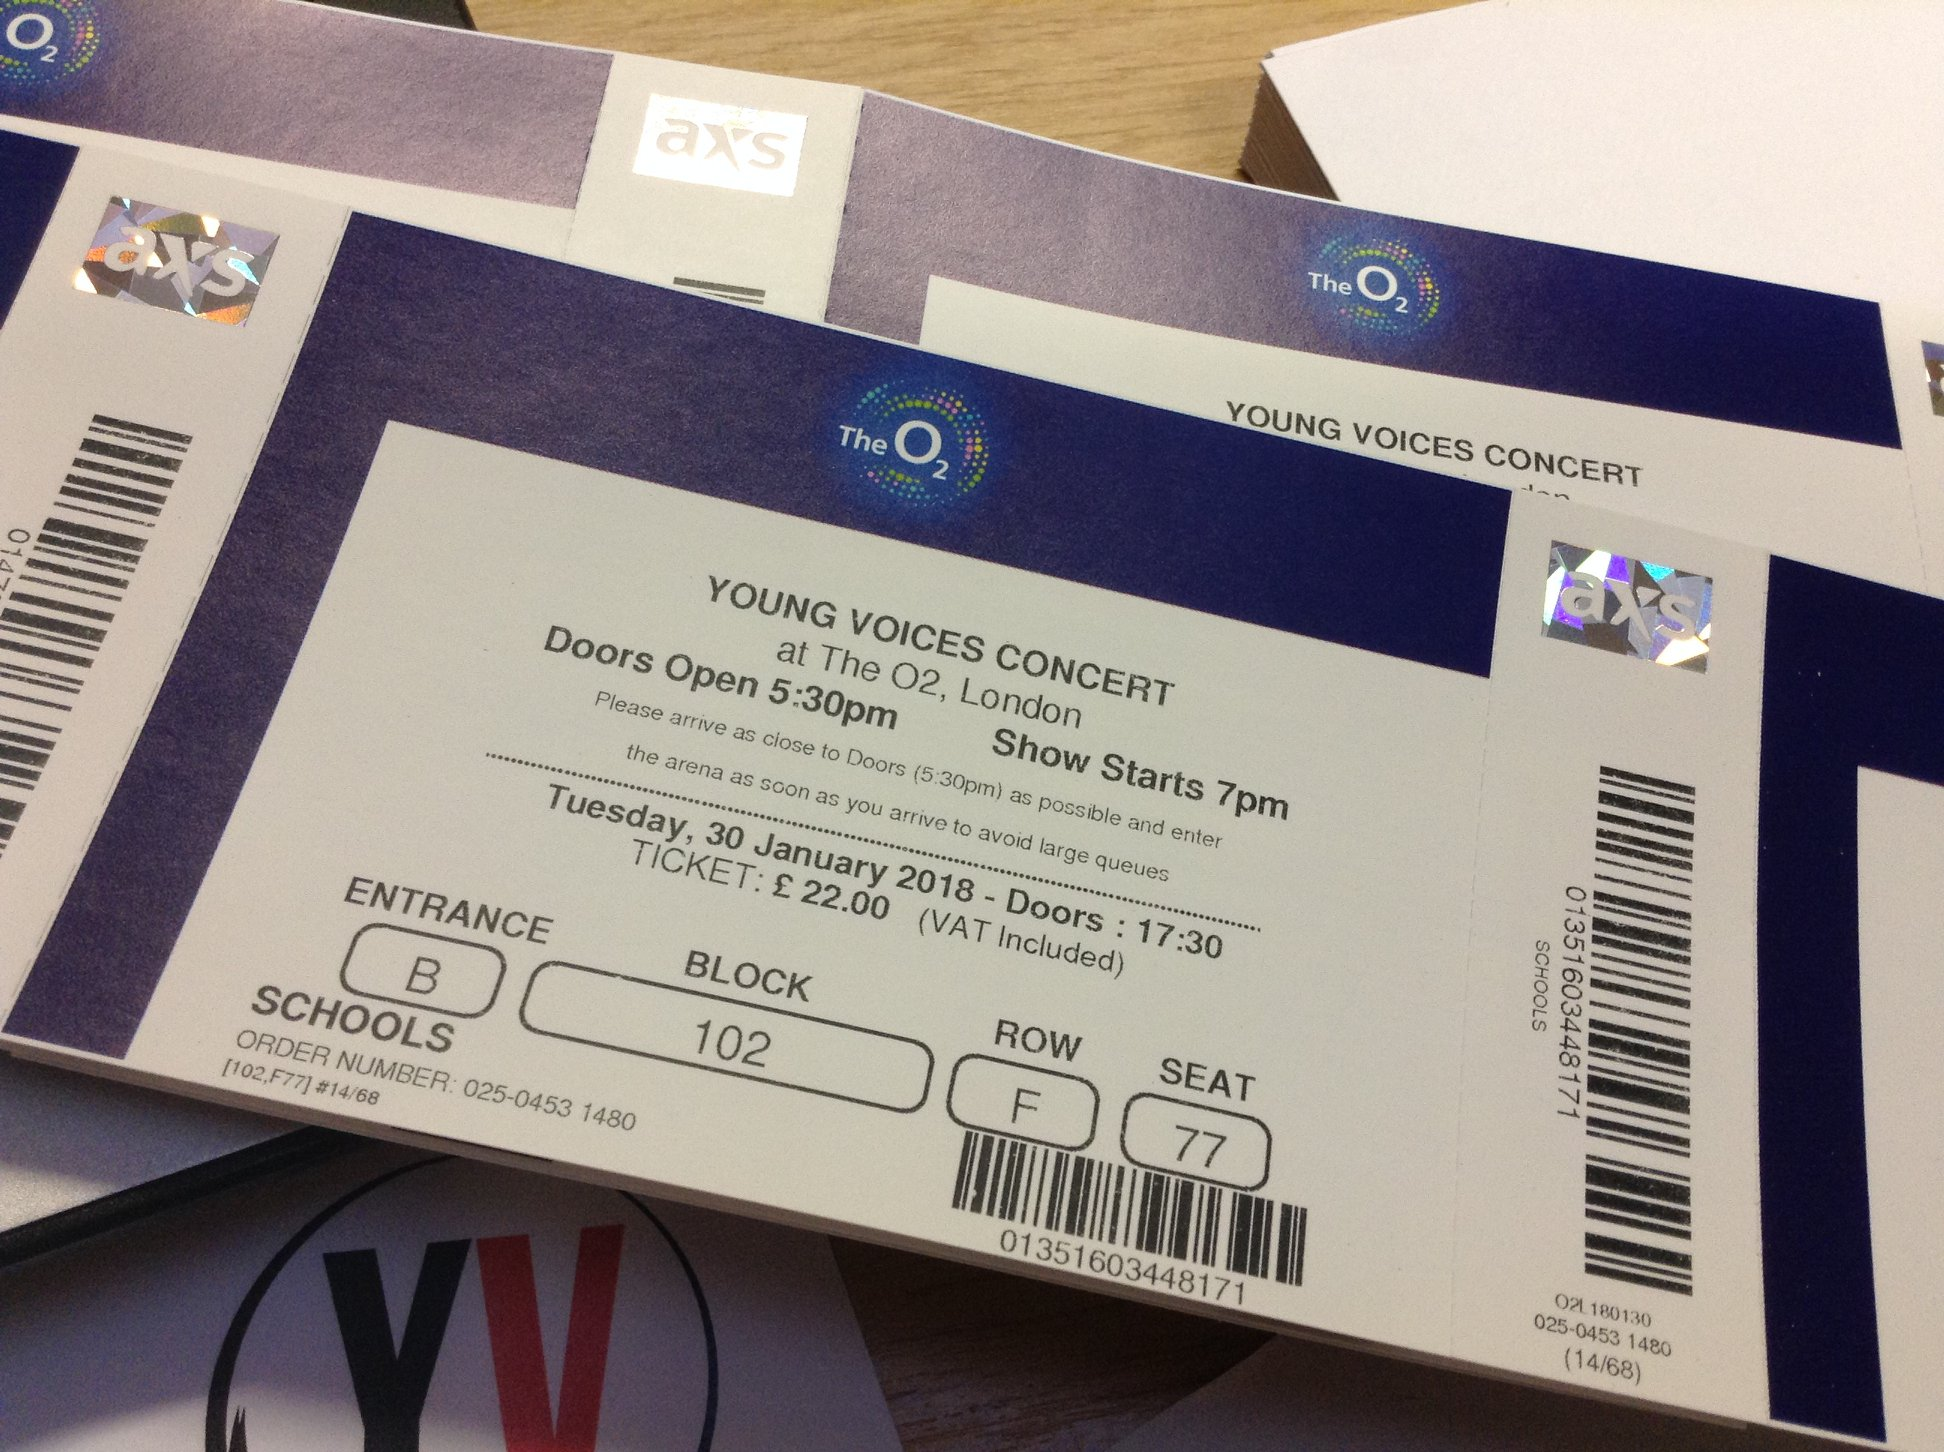 Young Voices: ticket purchase